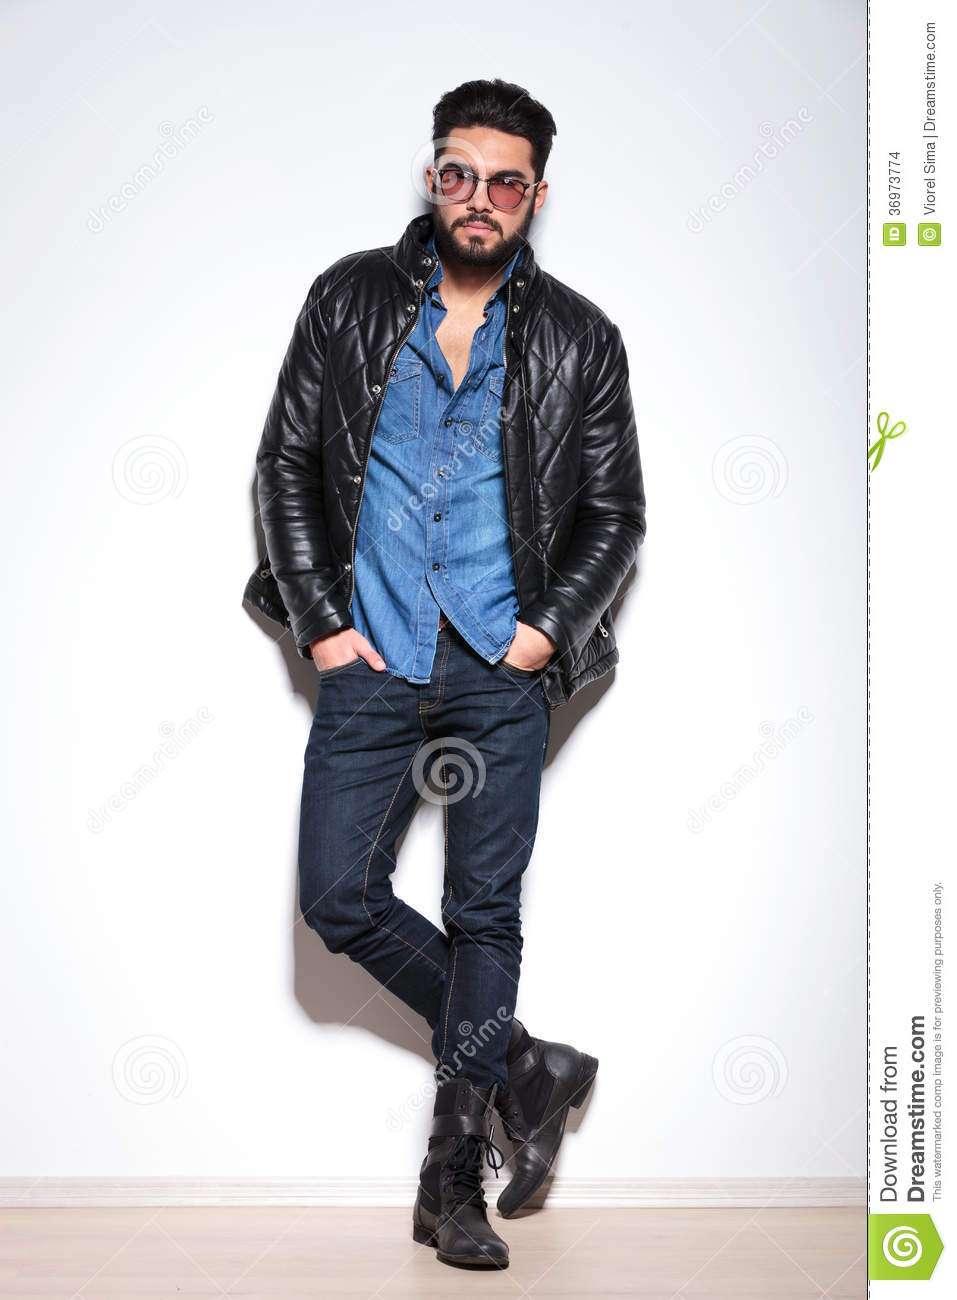 Casual Man In Leather Jacket Jeans And Boots Against Studio Wall